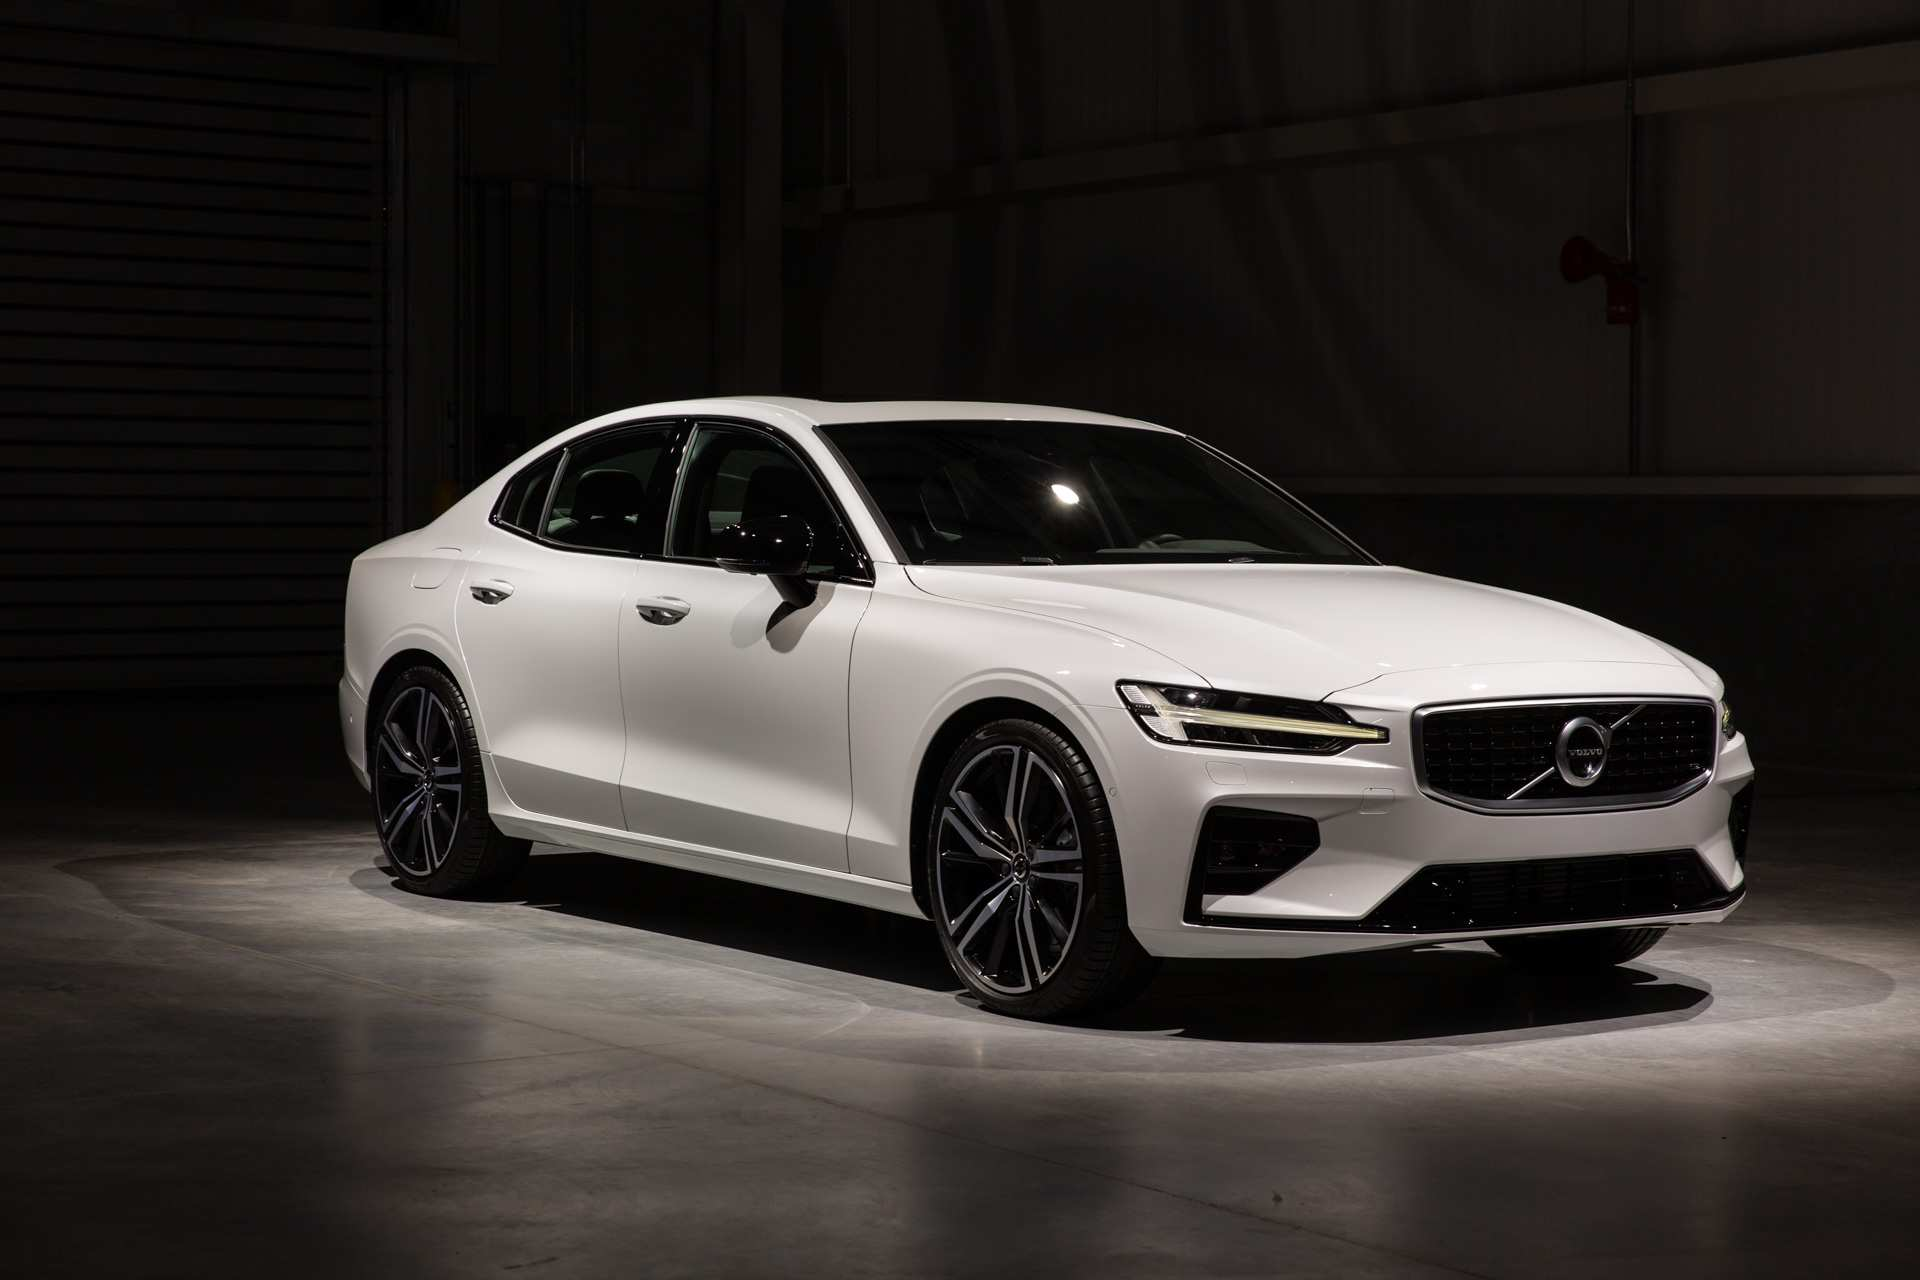 37 New 2019 Volvo S60 Redesign Images